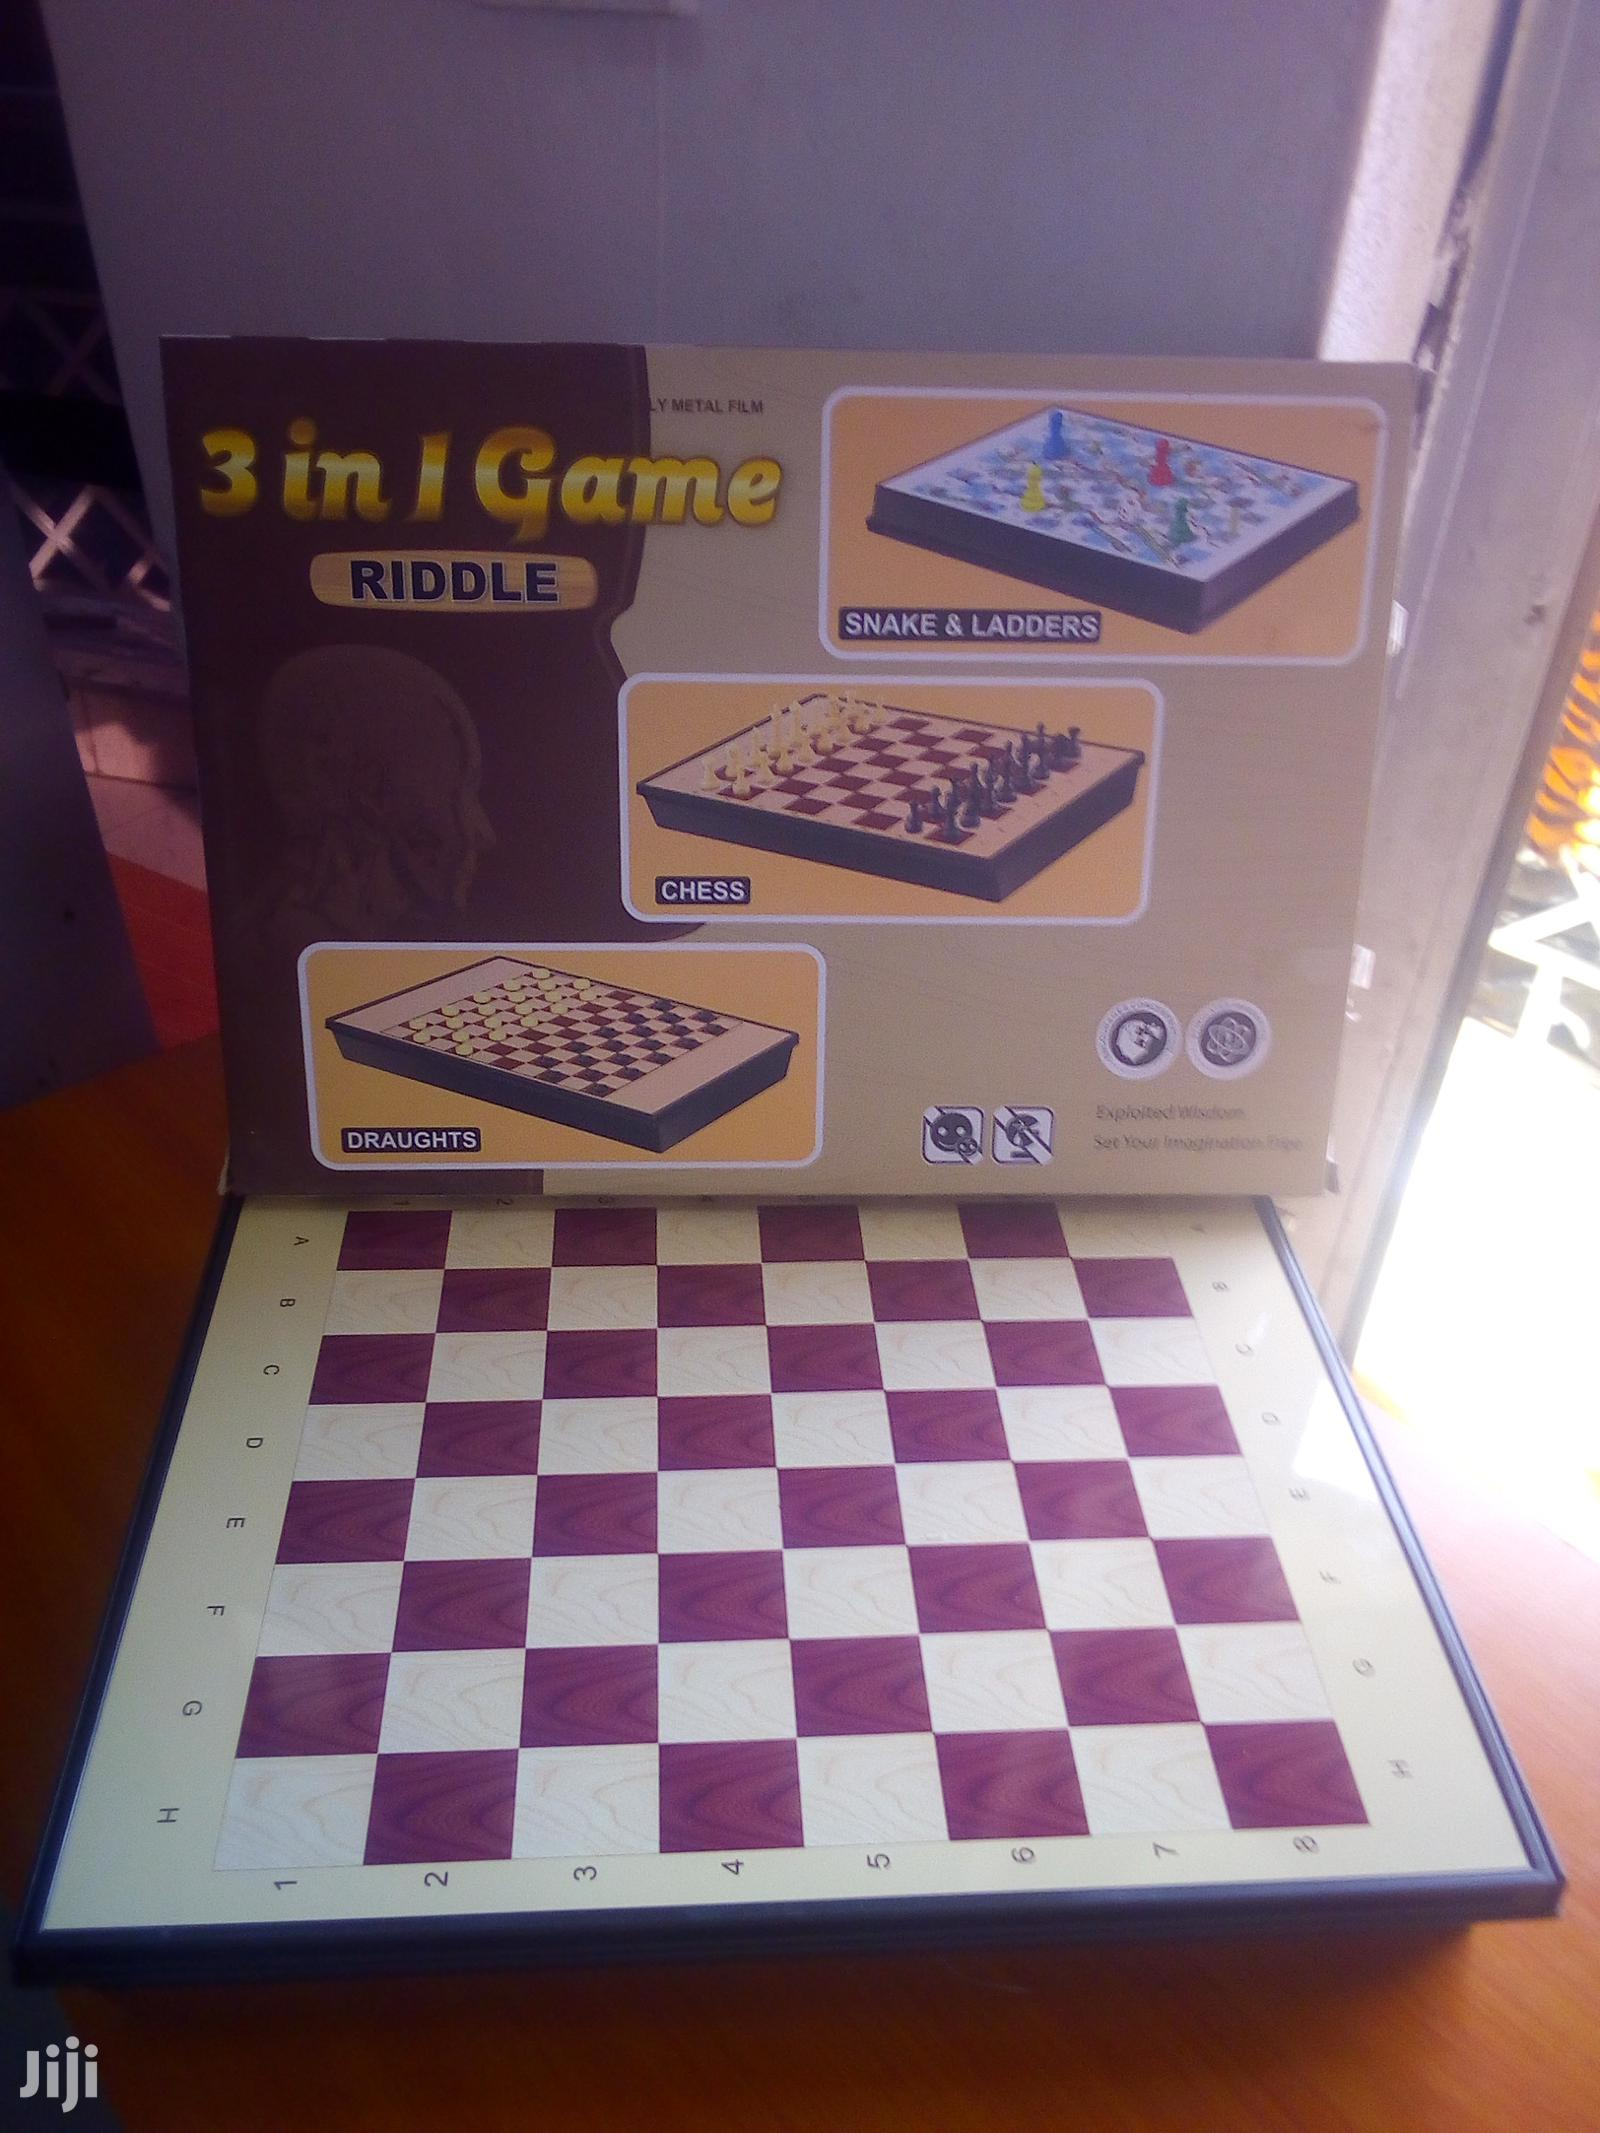 Archive: 3 In1 Game Snakes And Ladders, Chess And Draughts/Checkers